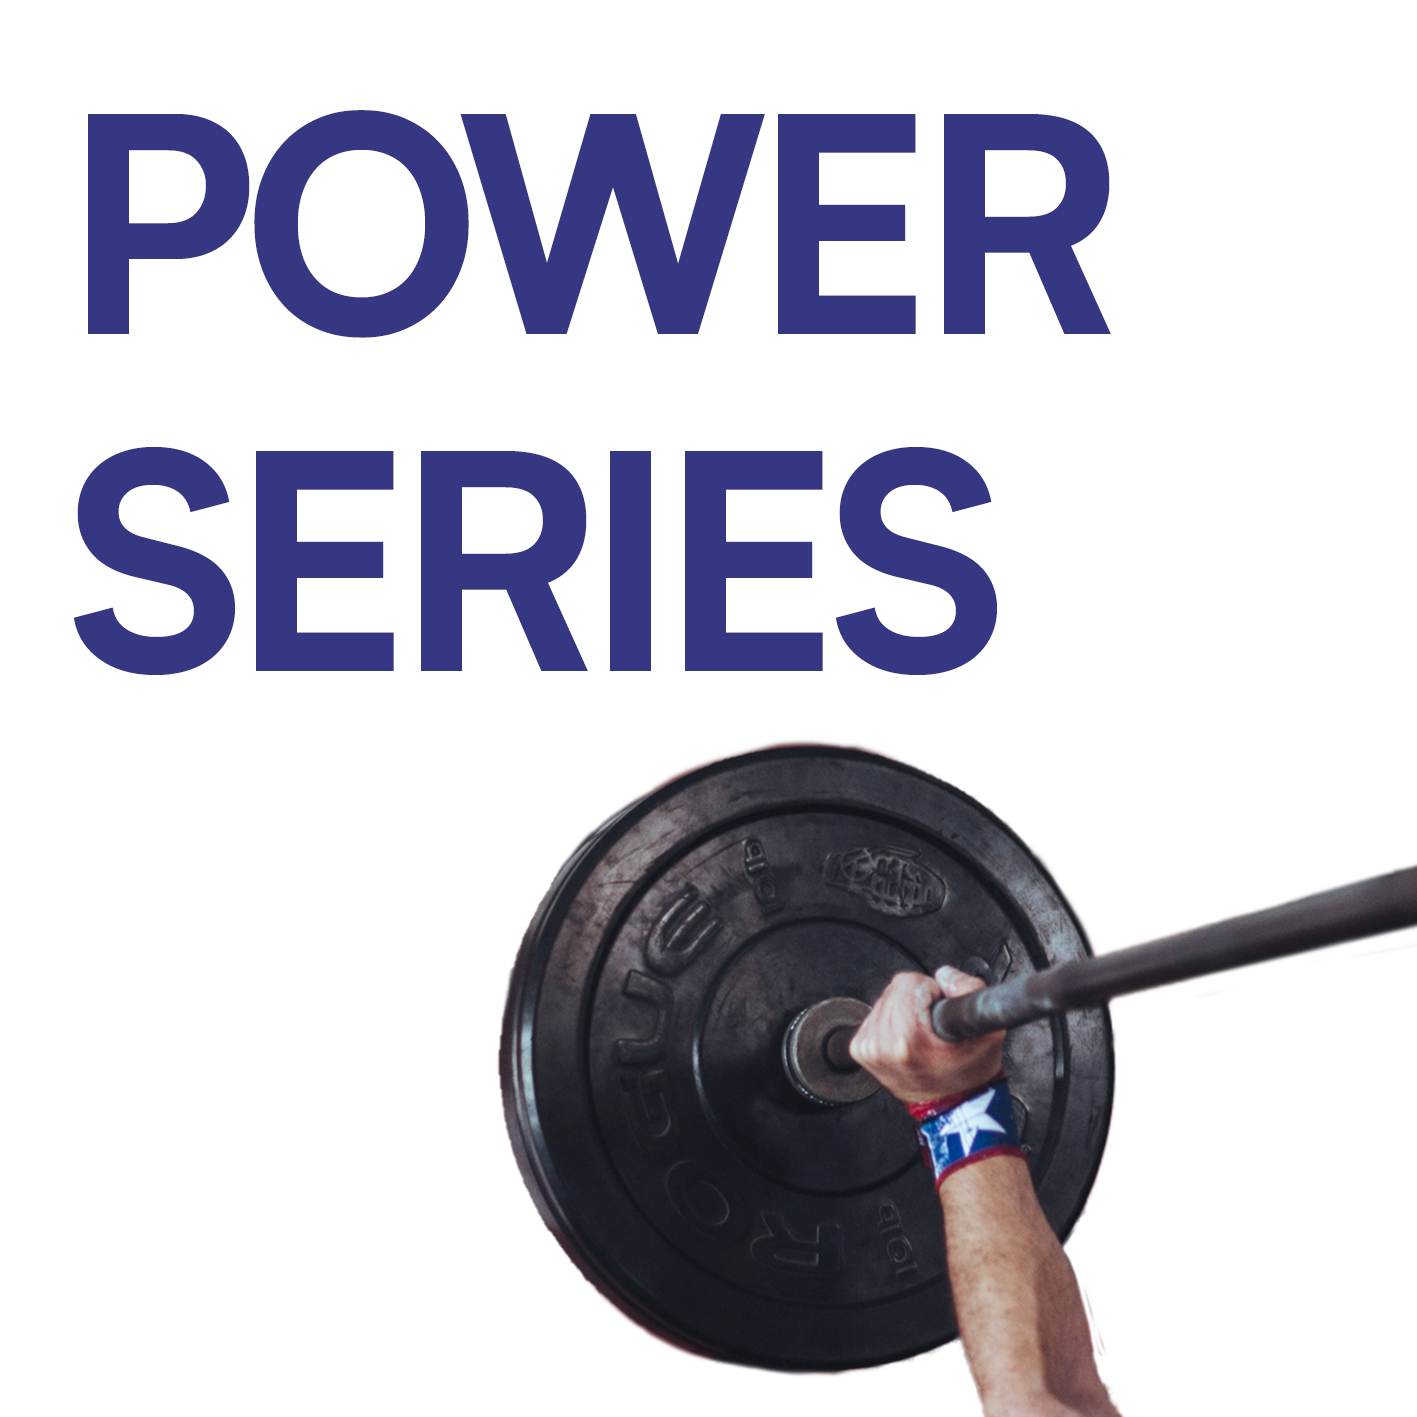 Power Series - For increased strength and power